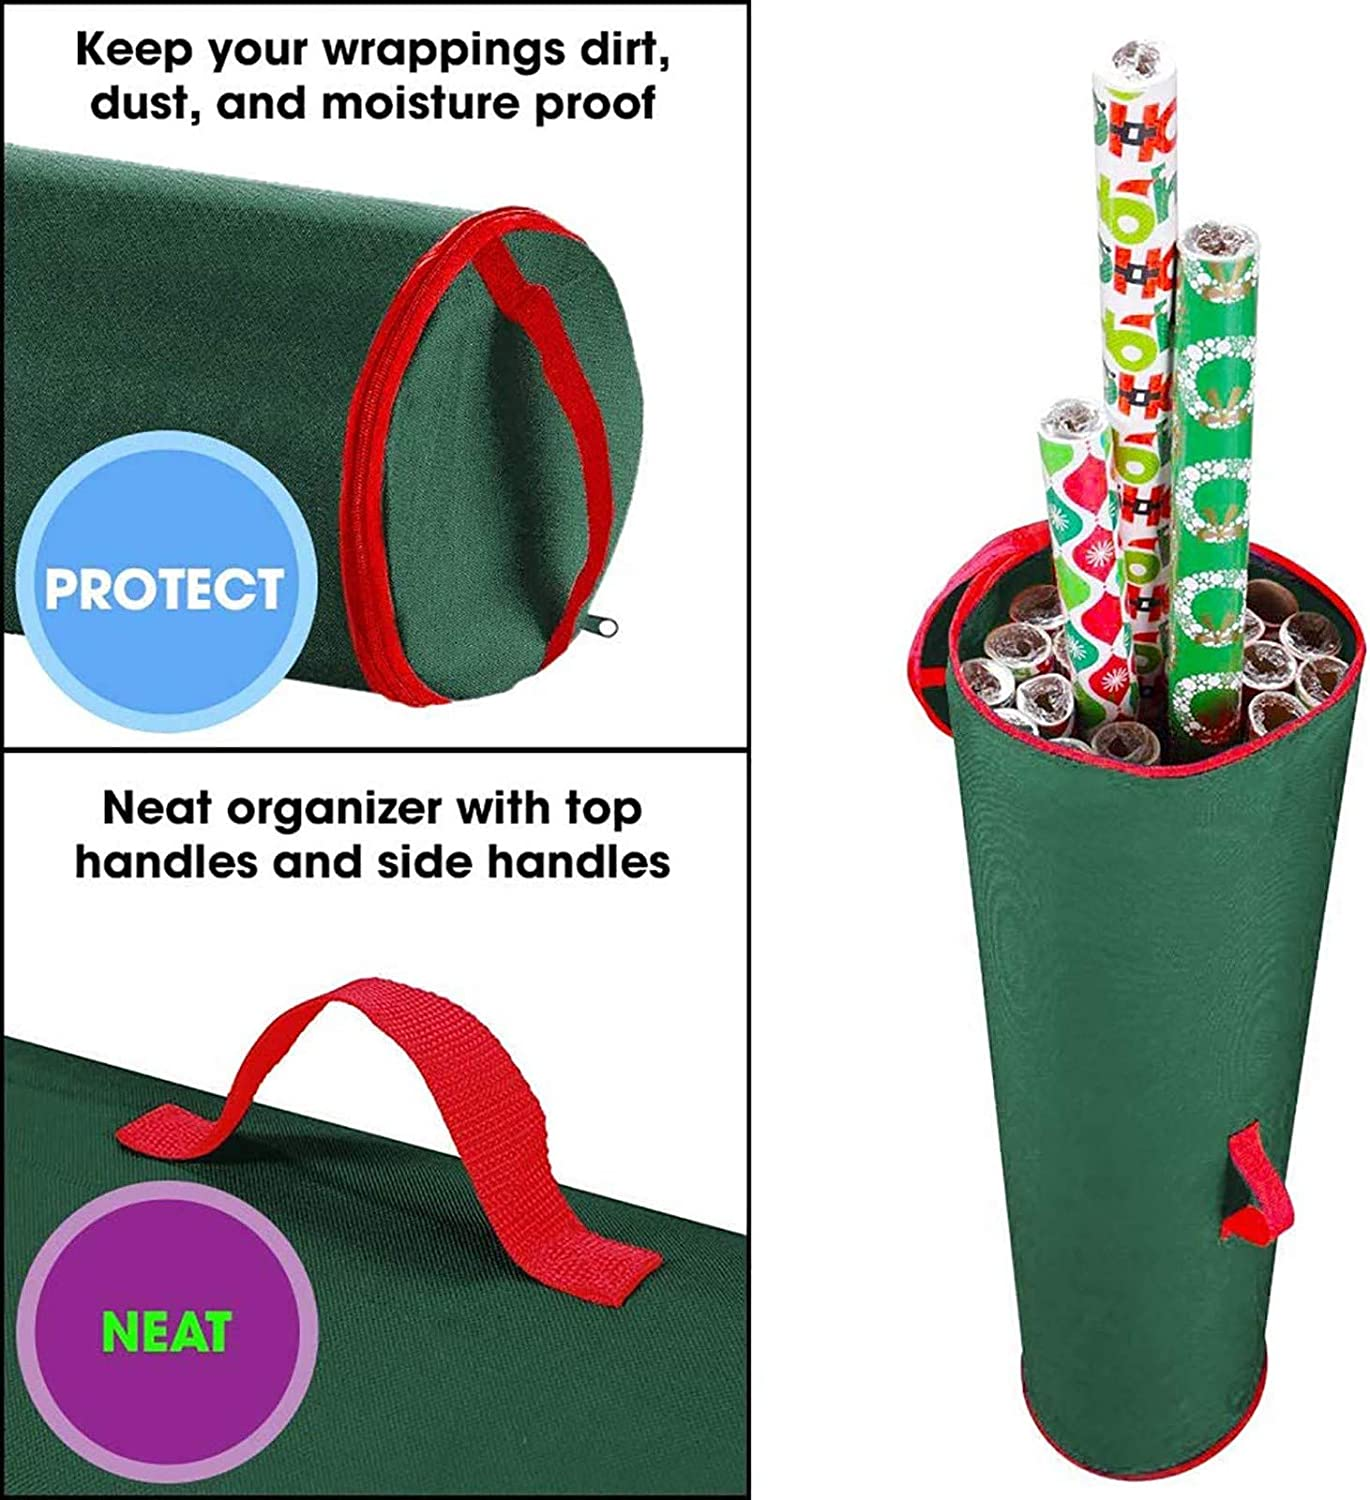 Tags Bows Christmas Storage Bags Boxs with Zips Organiser Stores Baubles Paper SO-buts Christmas Wrapping Paper Storage Bag Container Fits 14-20 Gifts Wrap Rolls Green